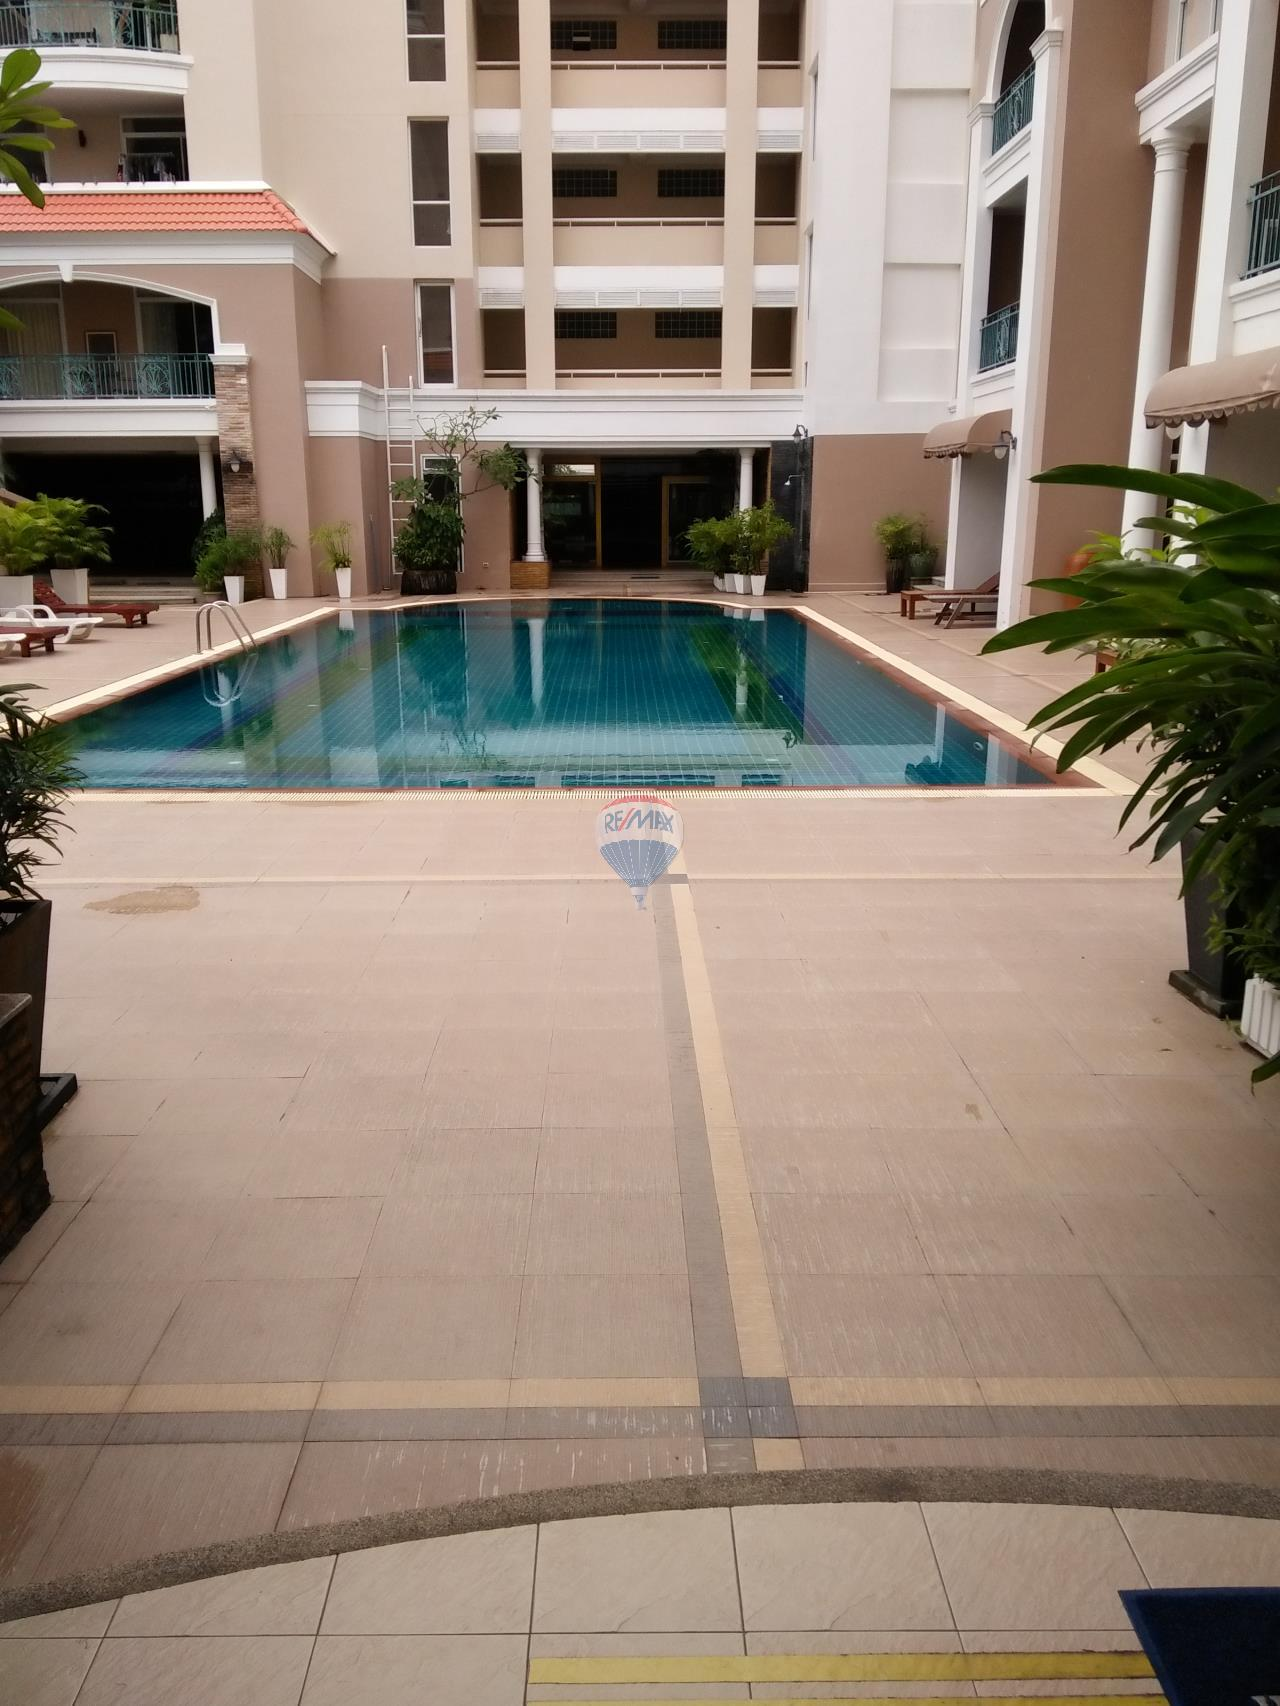 RE/MAX Top Properties Agency's Phuket,Patong Beach Studio for Rent 2